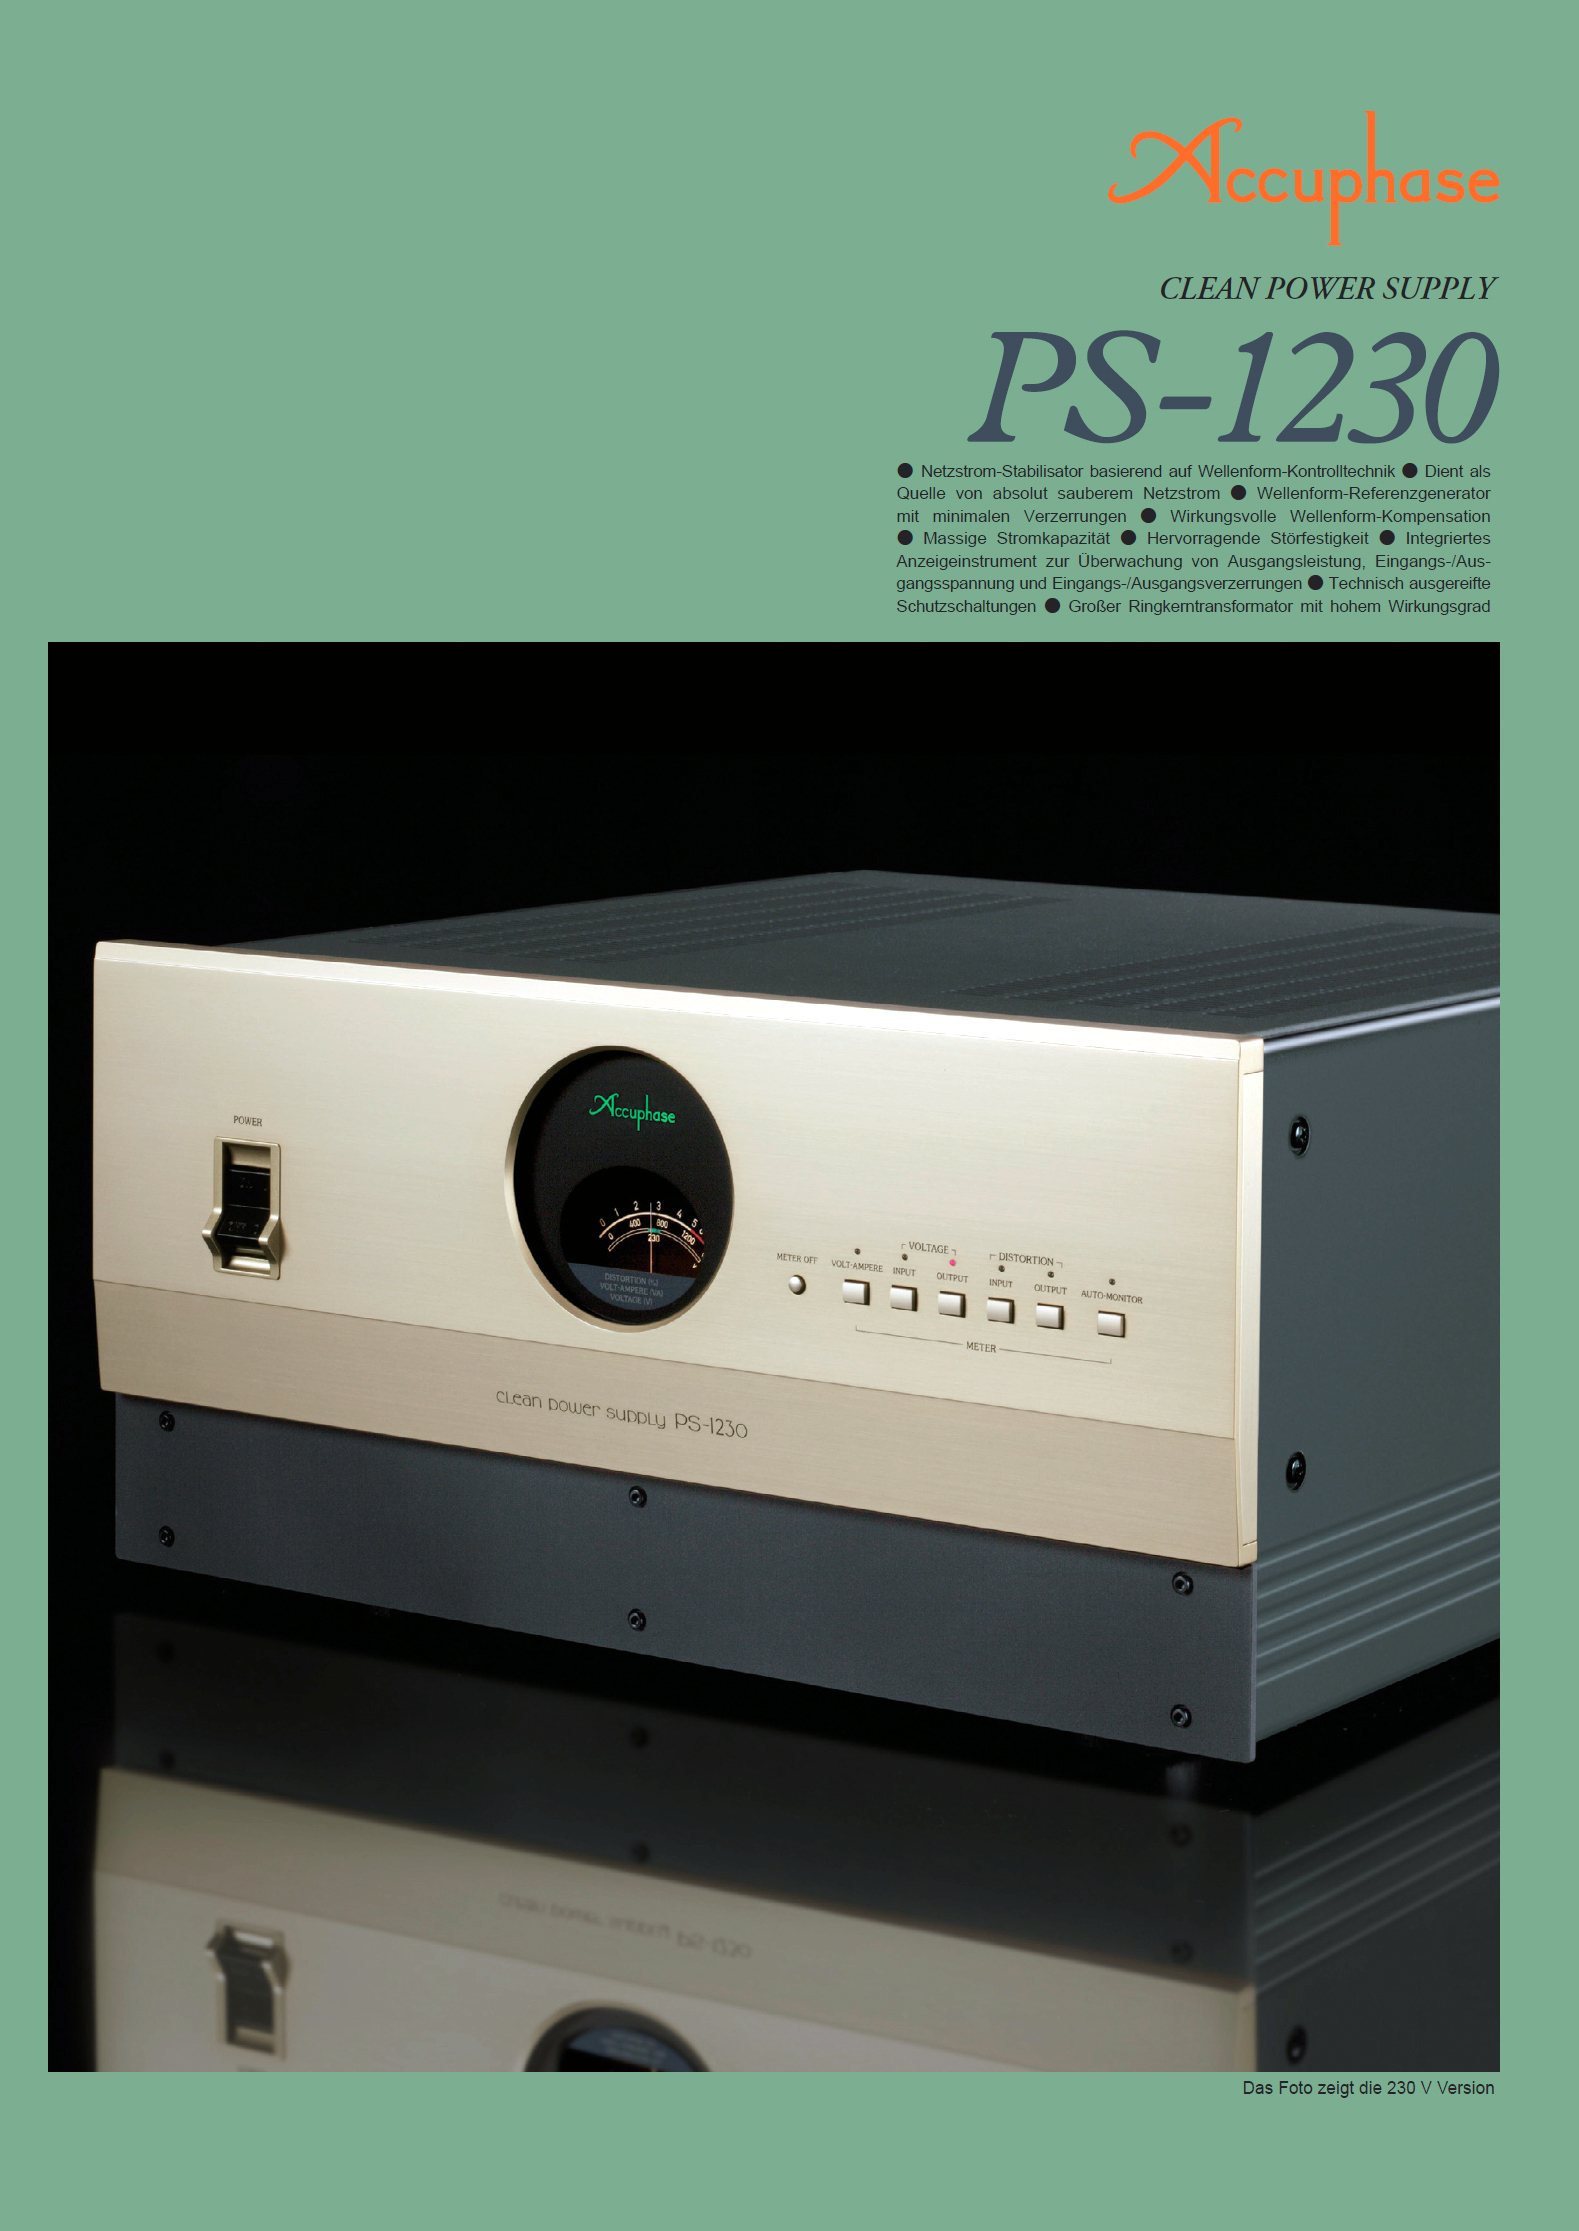 Accuphase PS-1230-Prospekt-1.jpg